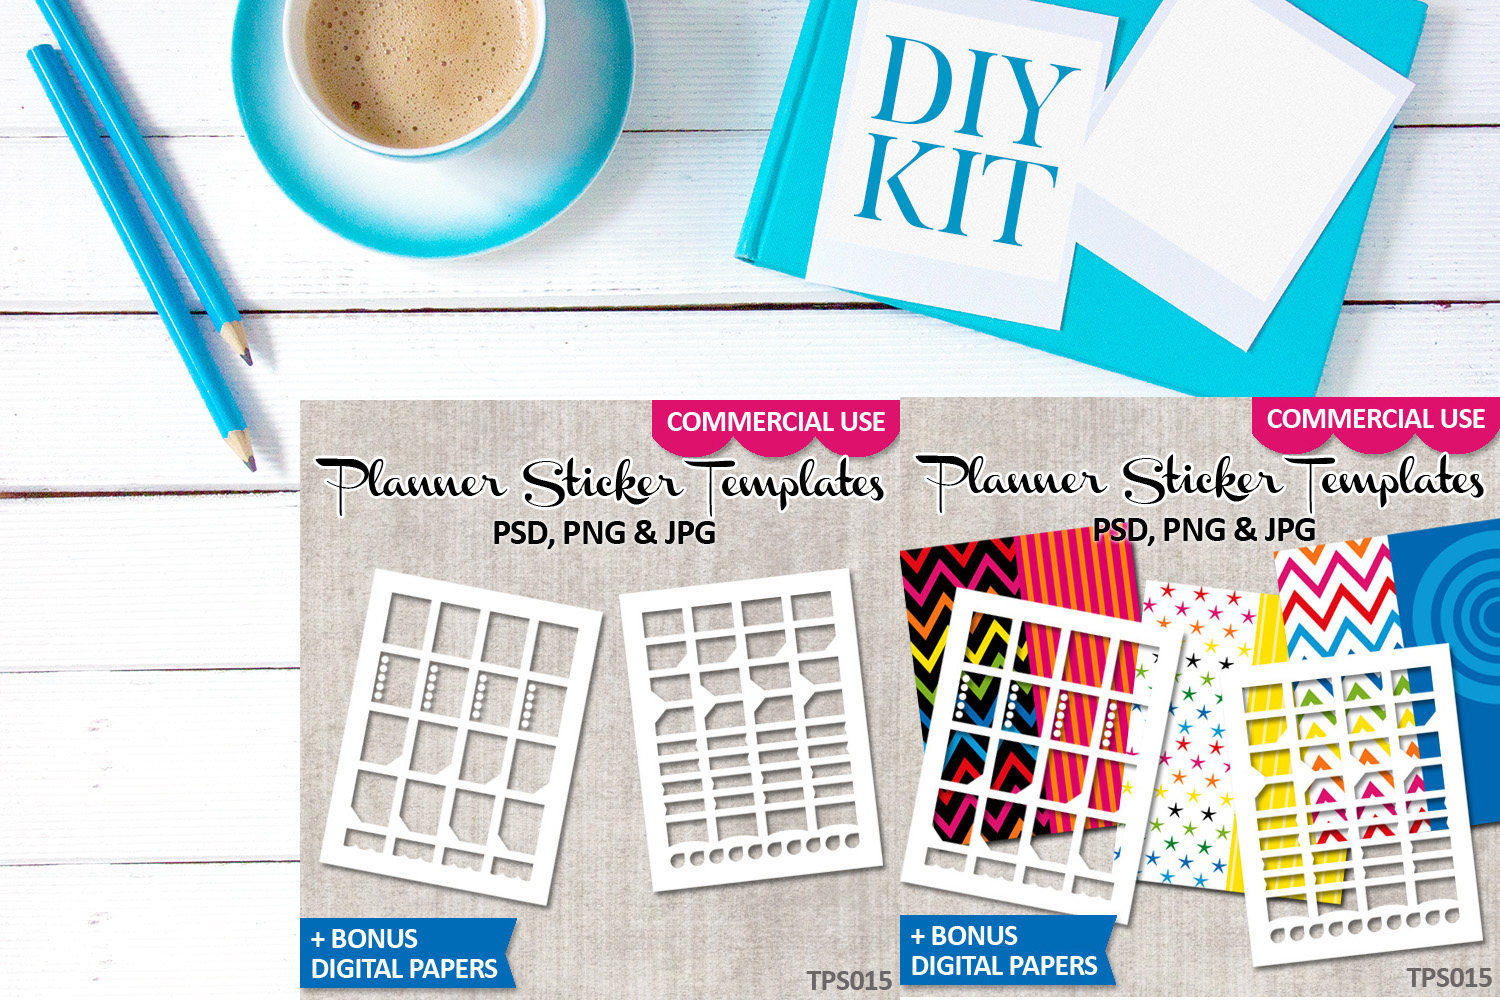 Erin Condren Planner Stickers Templates Bundle Vol. 5 example image 2